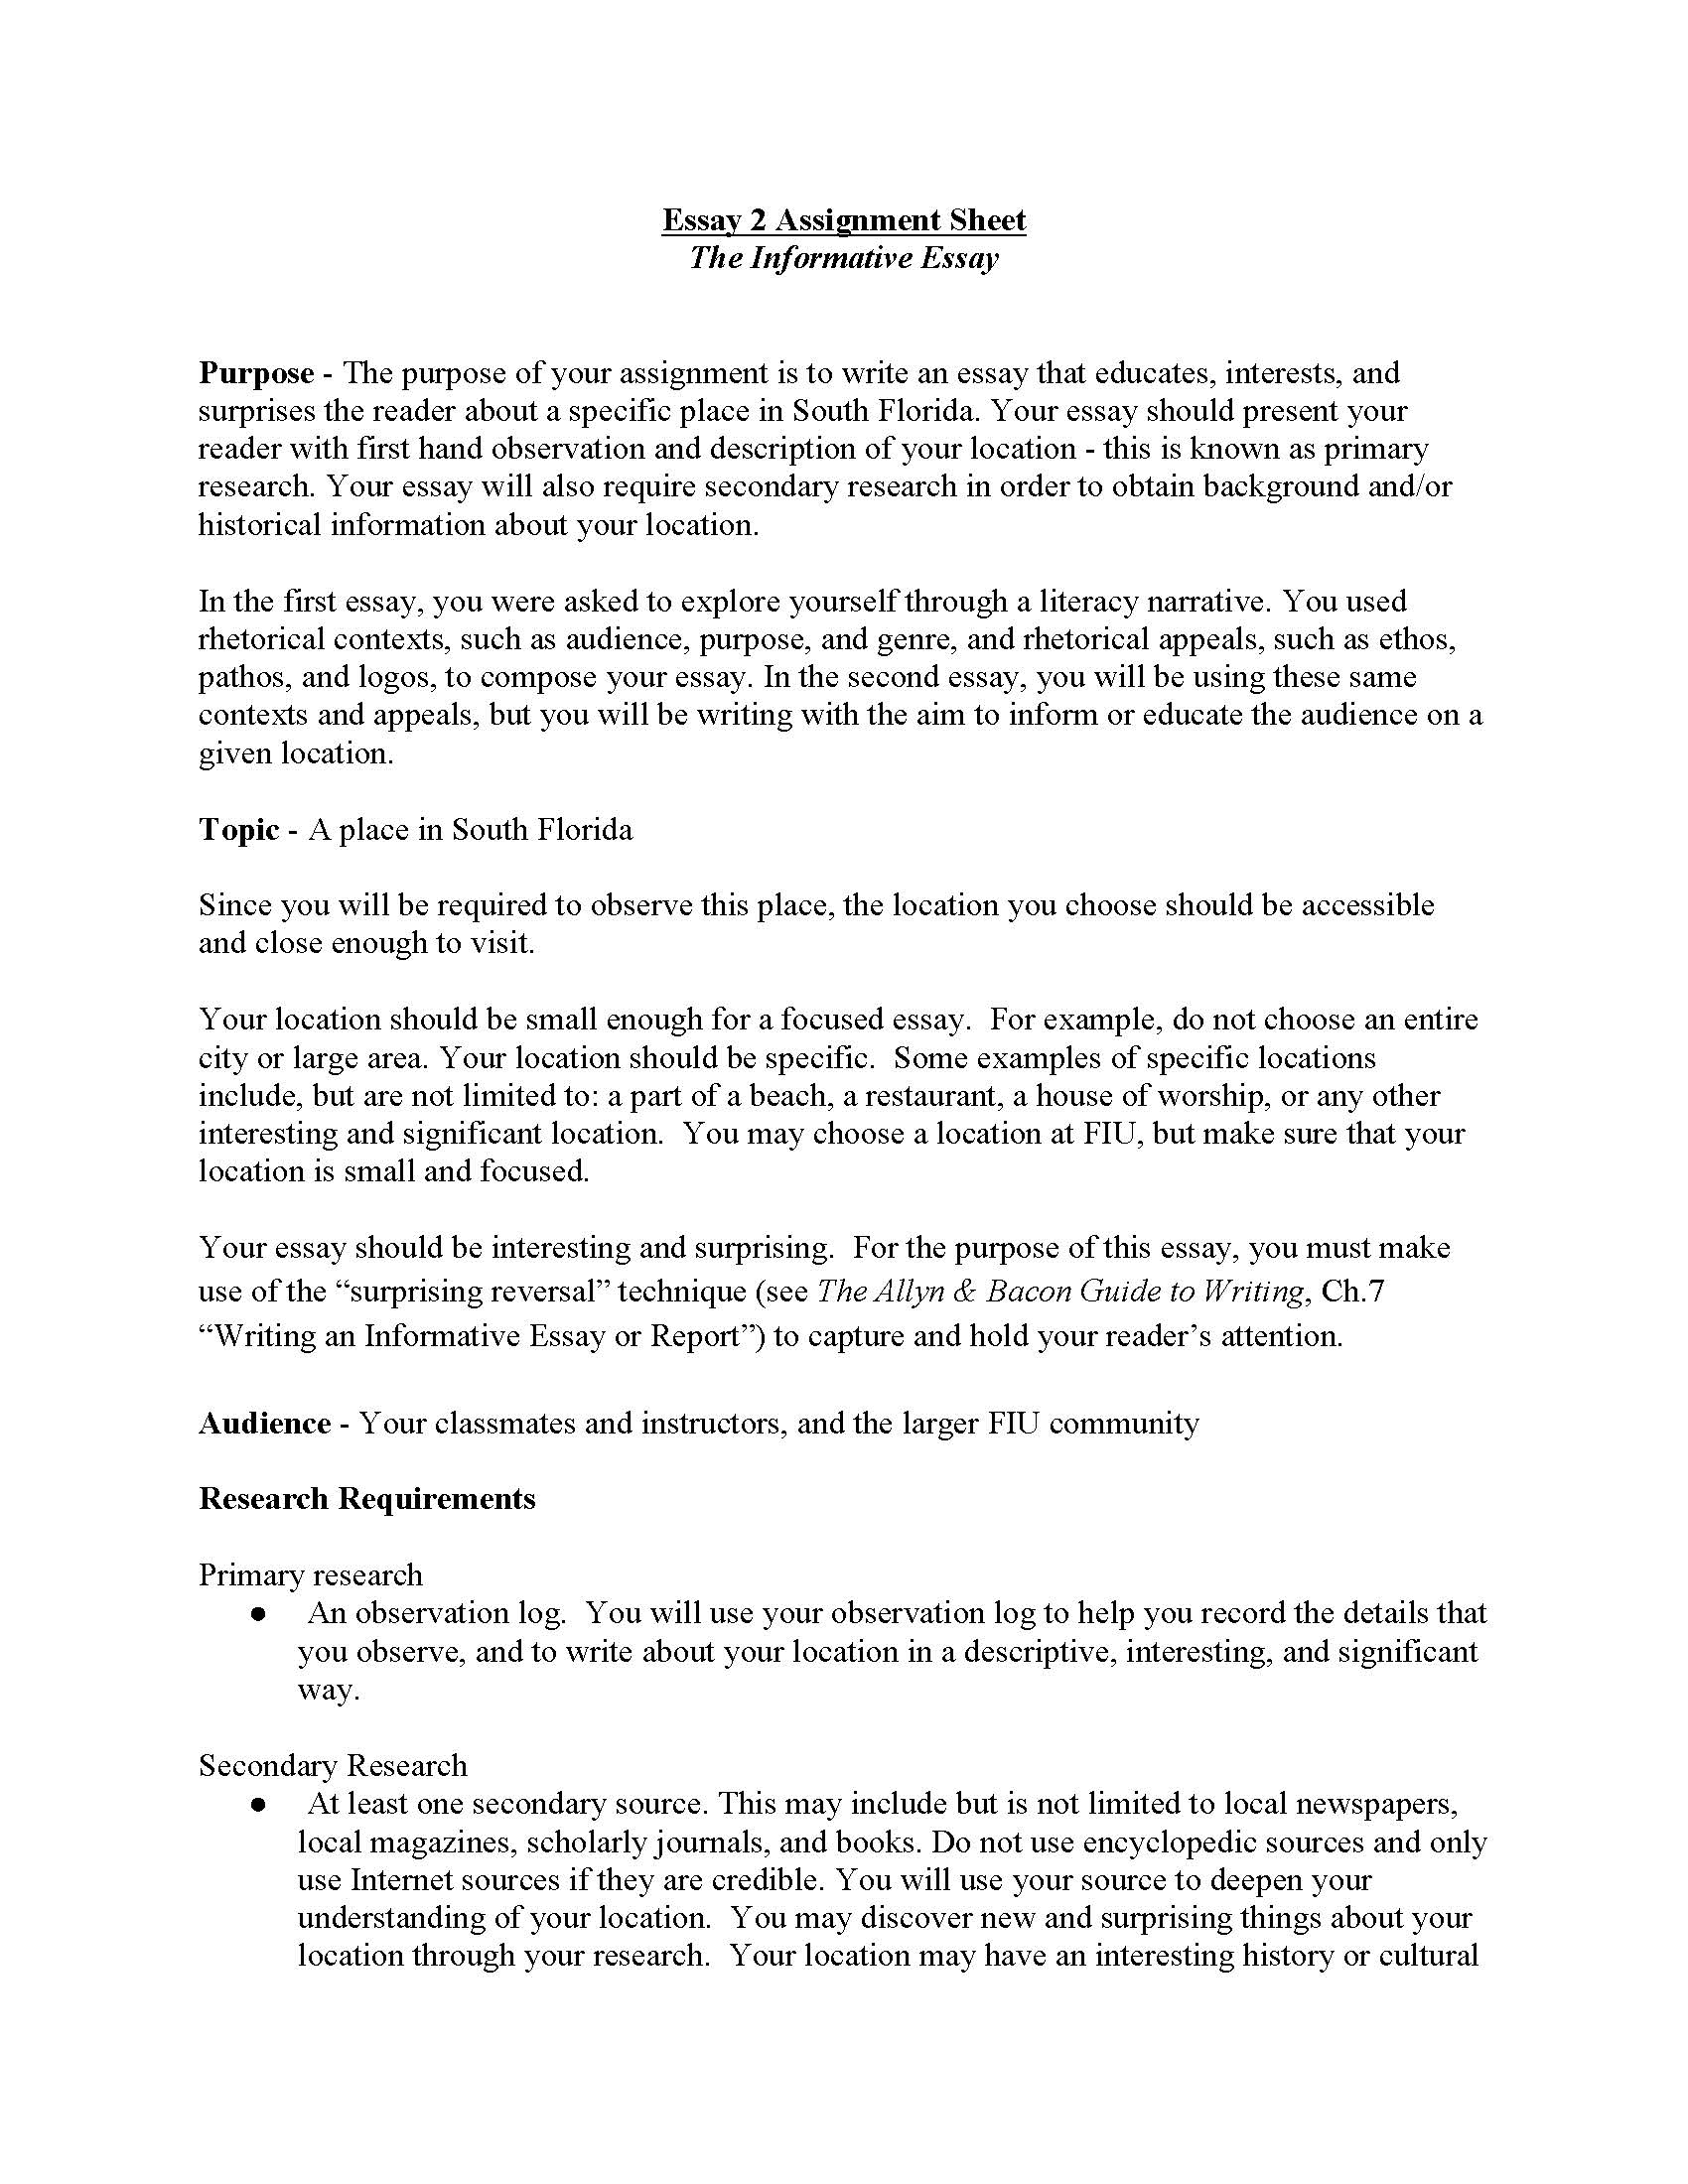 004 Essay Example Writing An Informative Unit Assignment Page Sensational About The Immigrant Experience Ppt Introduction Full